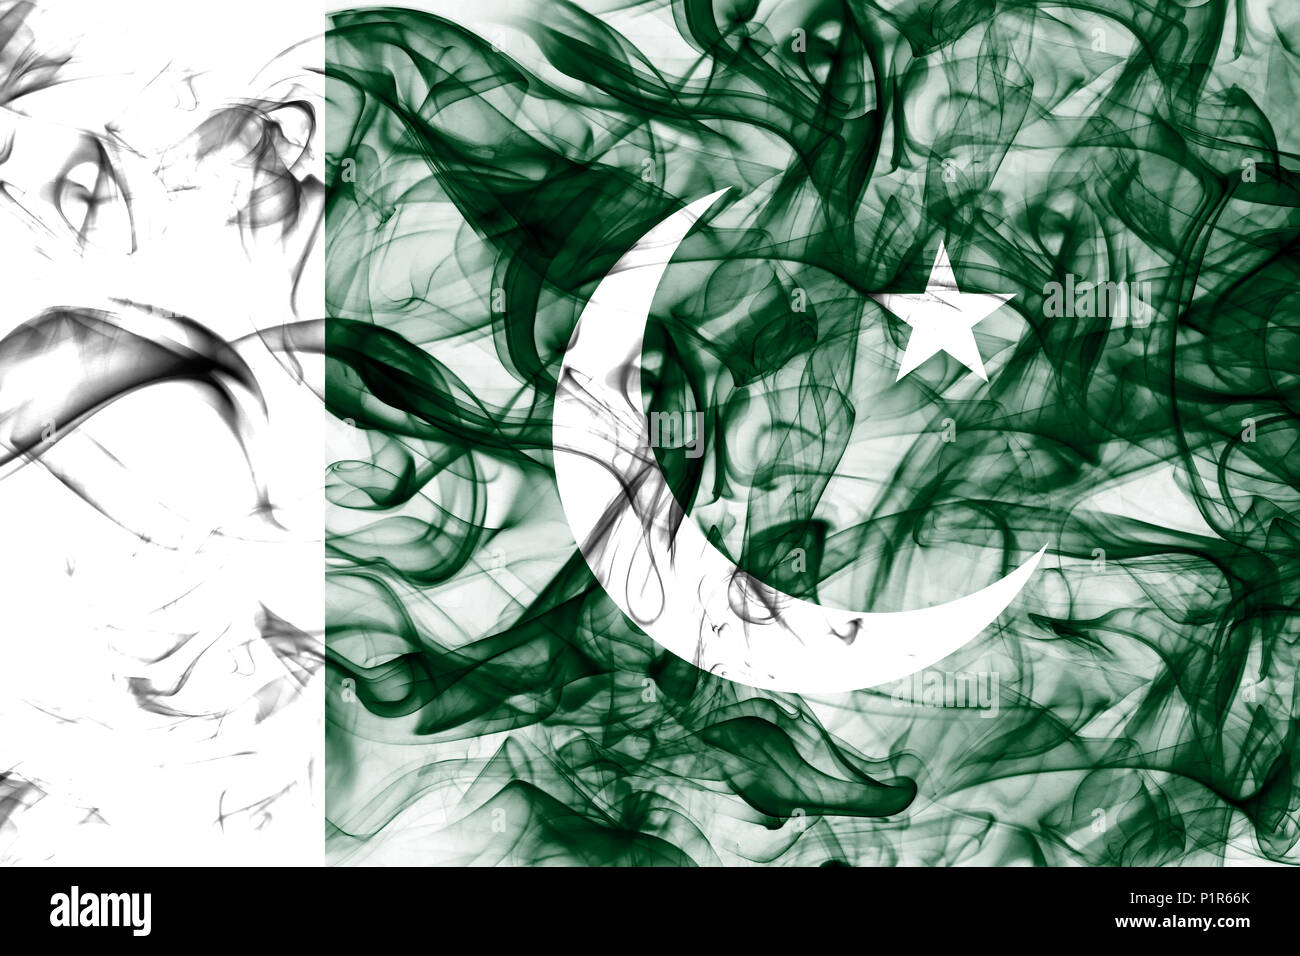 Pakistan smoke flag - Stock Image